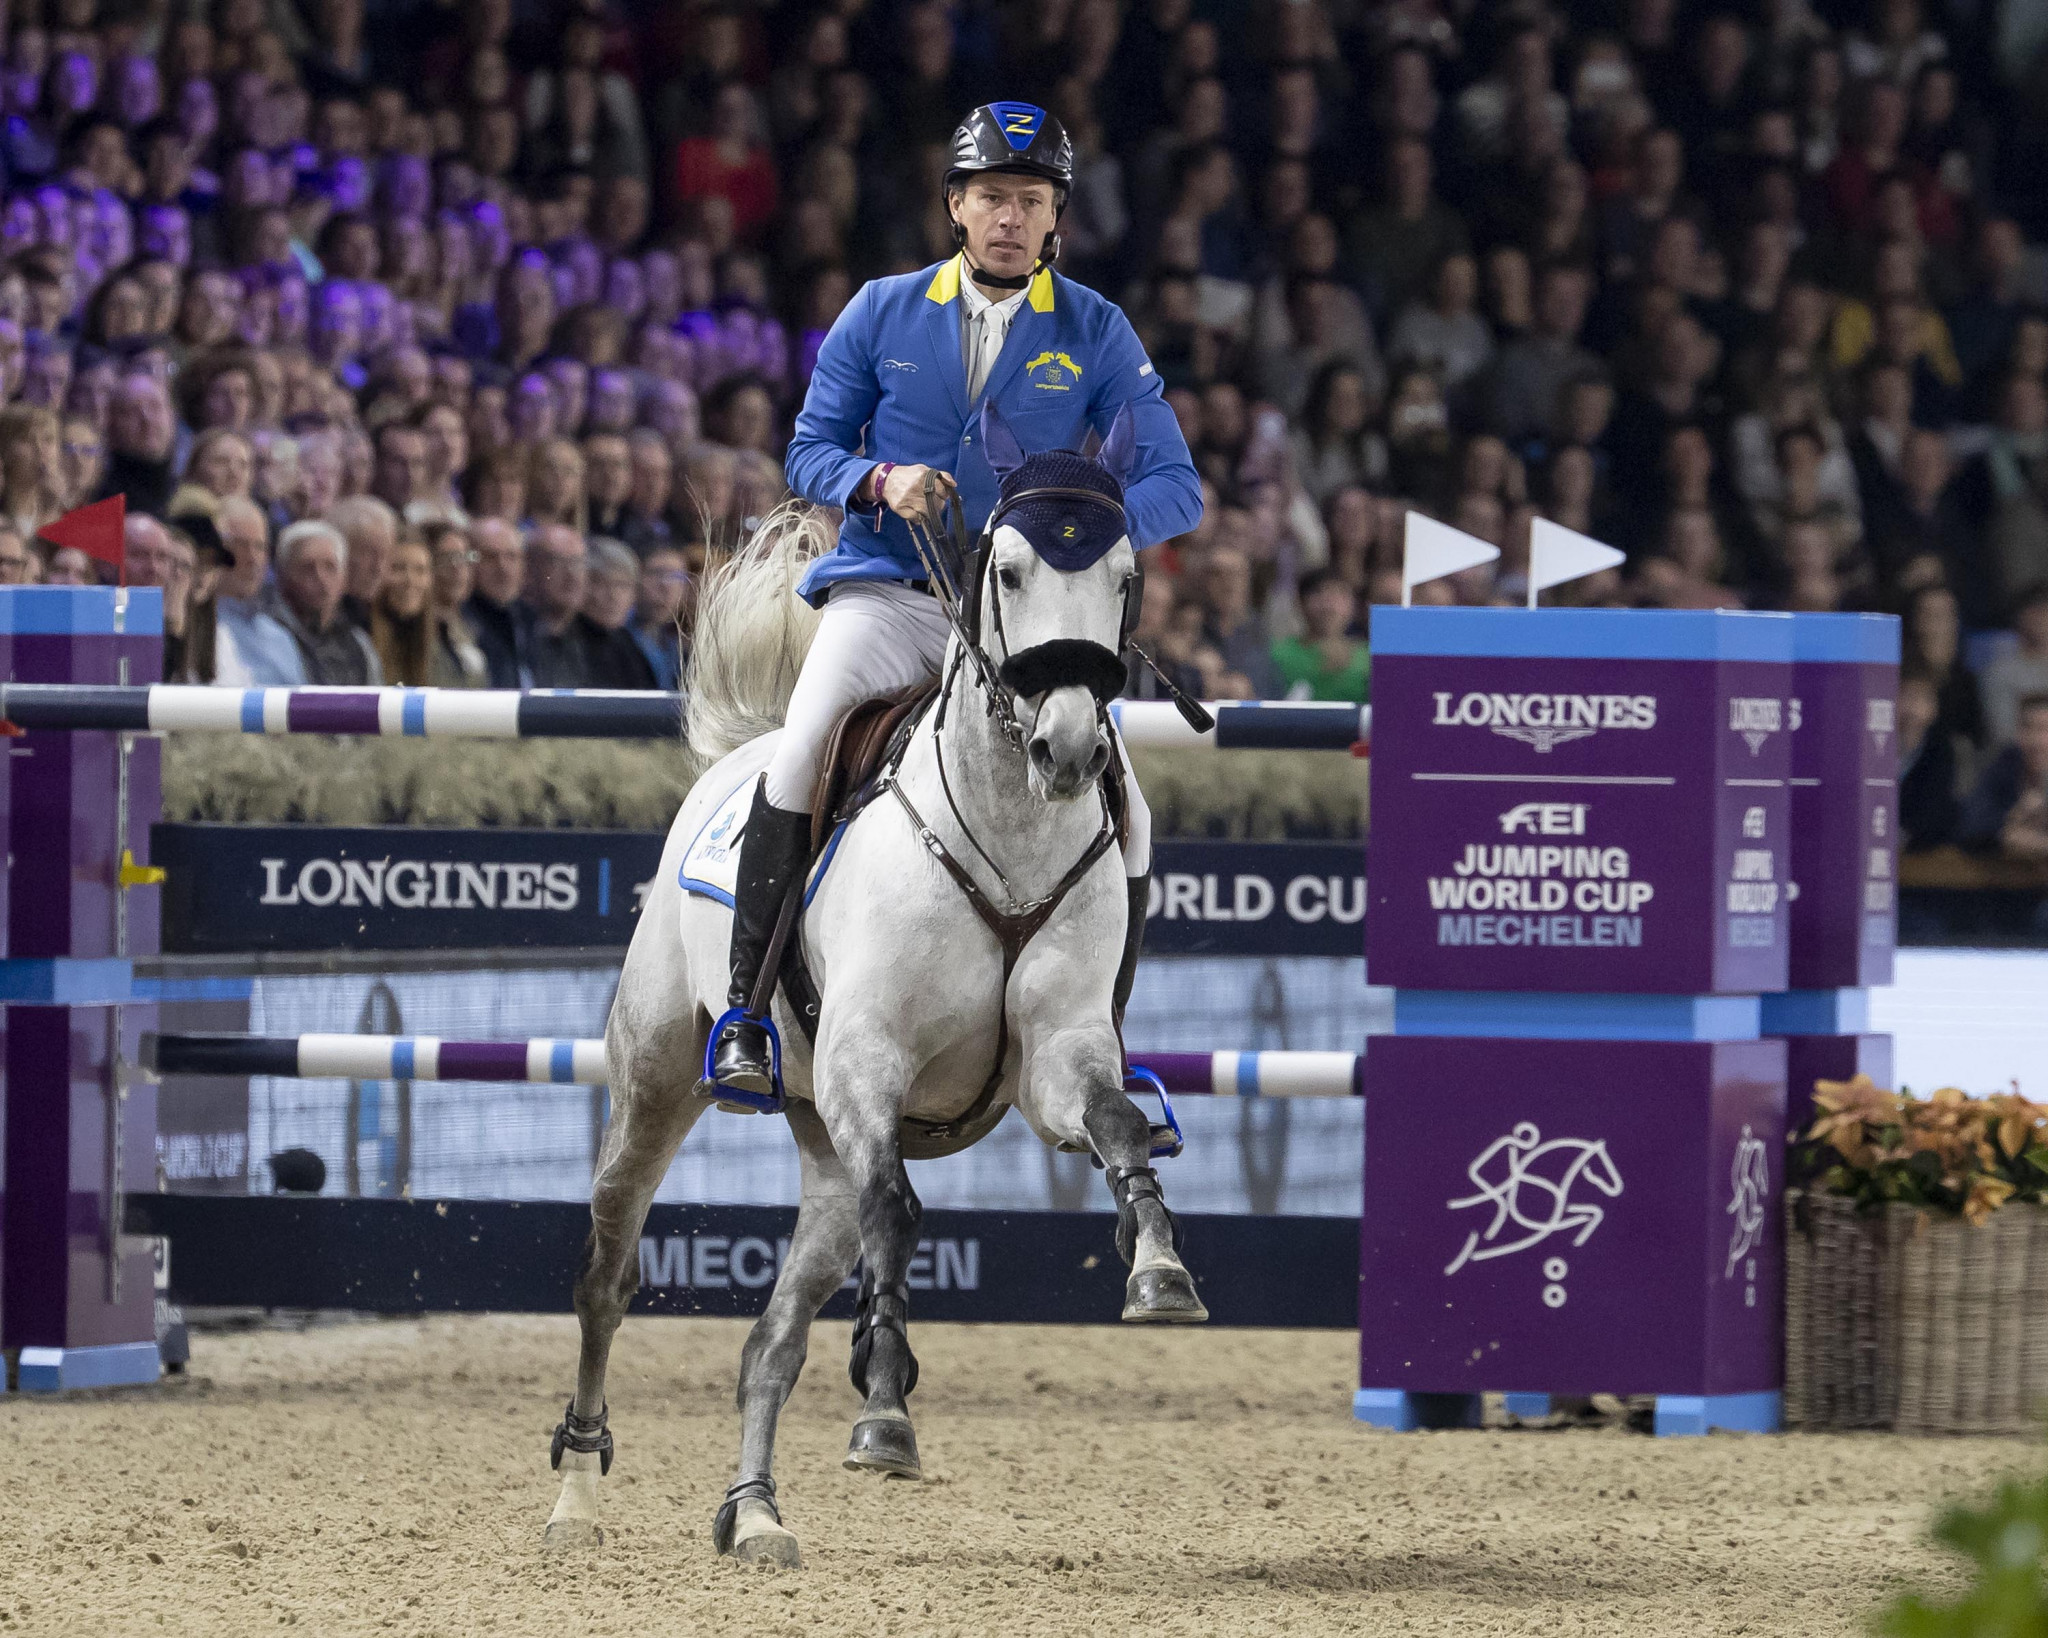 Germany's Ahlmann wins ninth leg of FEI Jumping World Cup